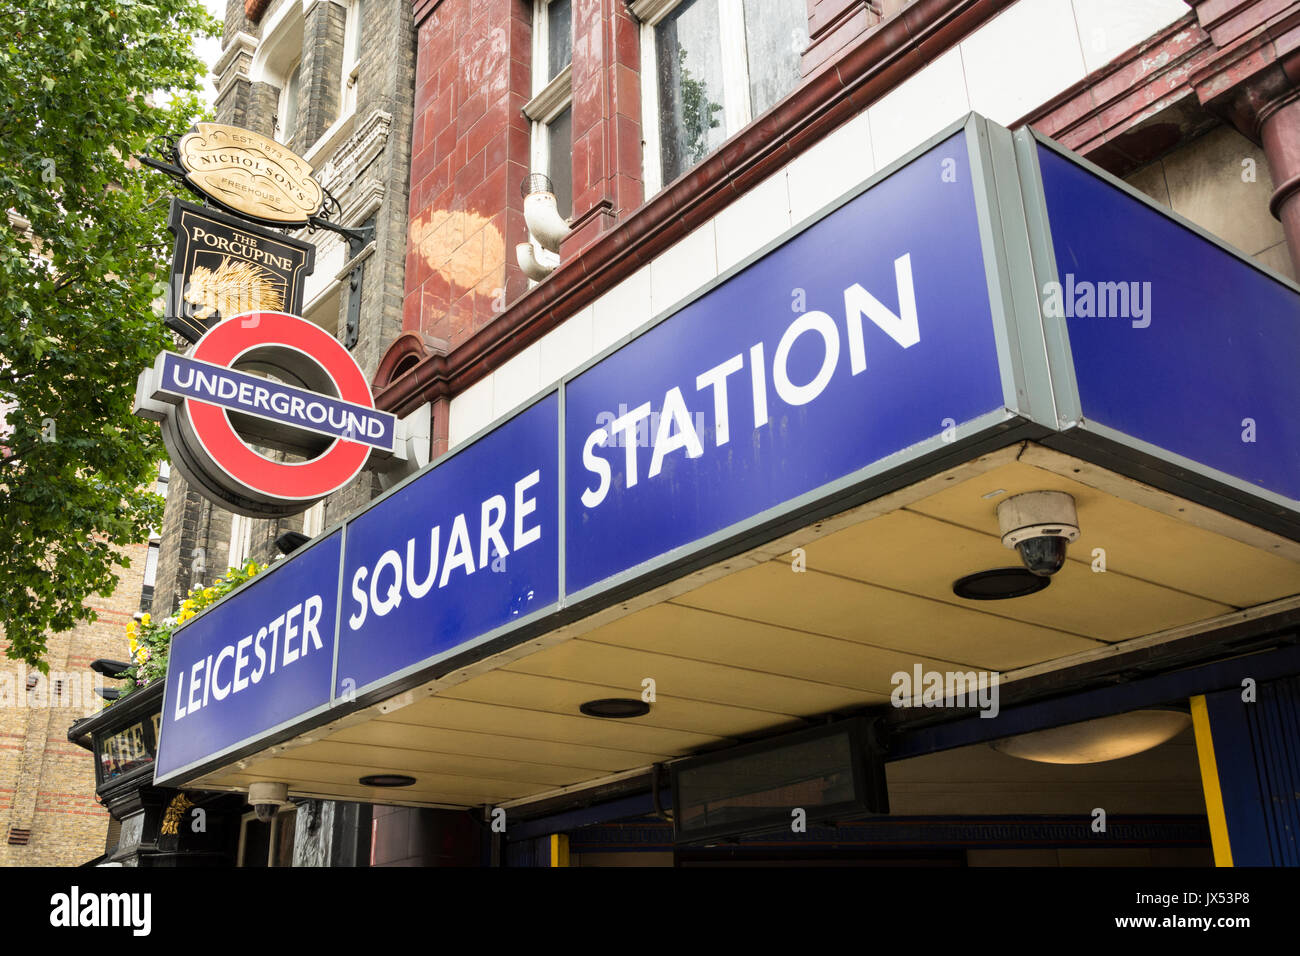 Leicester Square tube station entrance in London's West End. - Stock Image